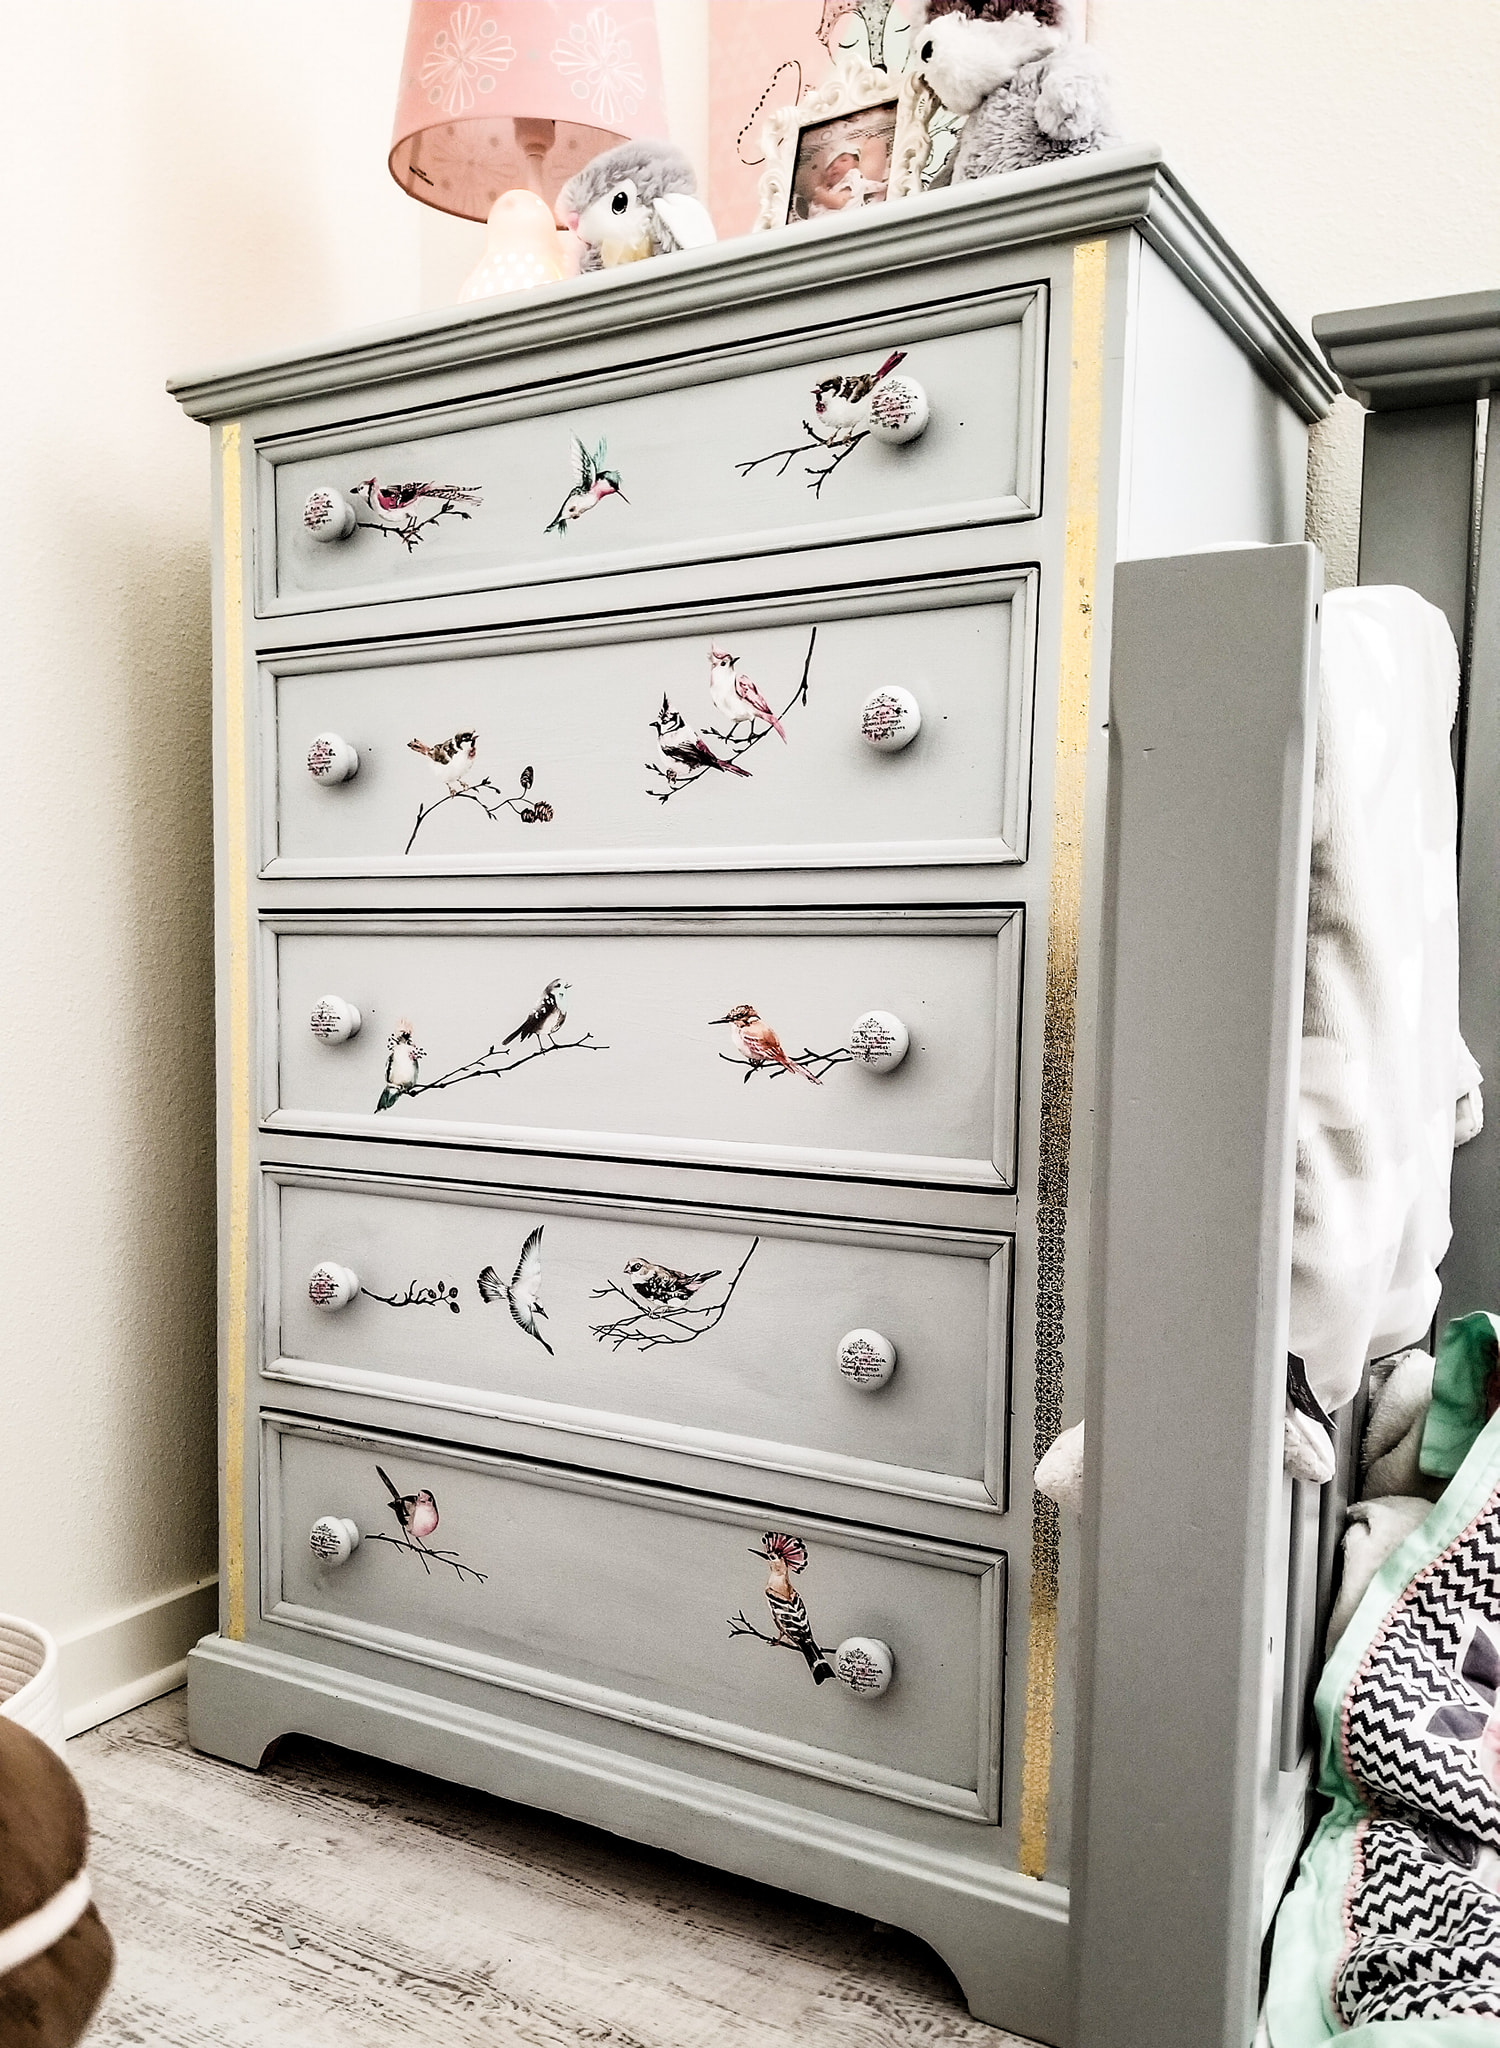 The bit of gold on the changing table works beautifully with the butterflies-dont you think?